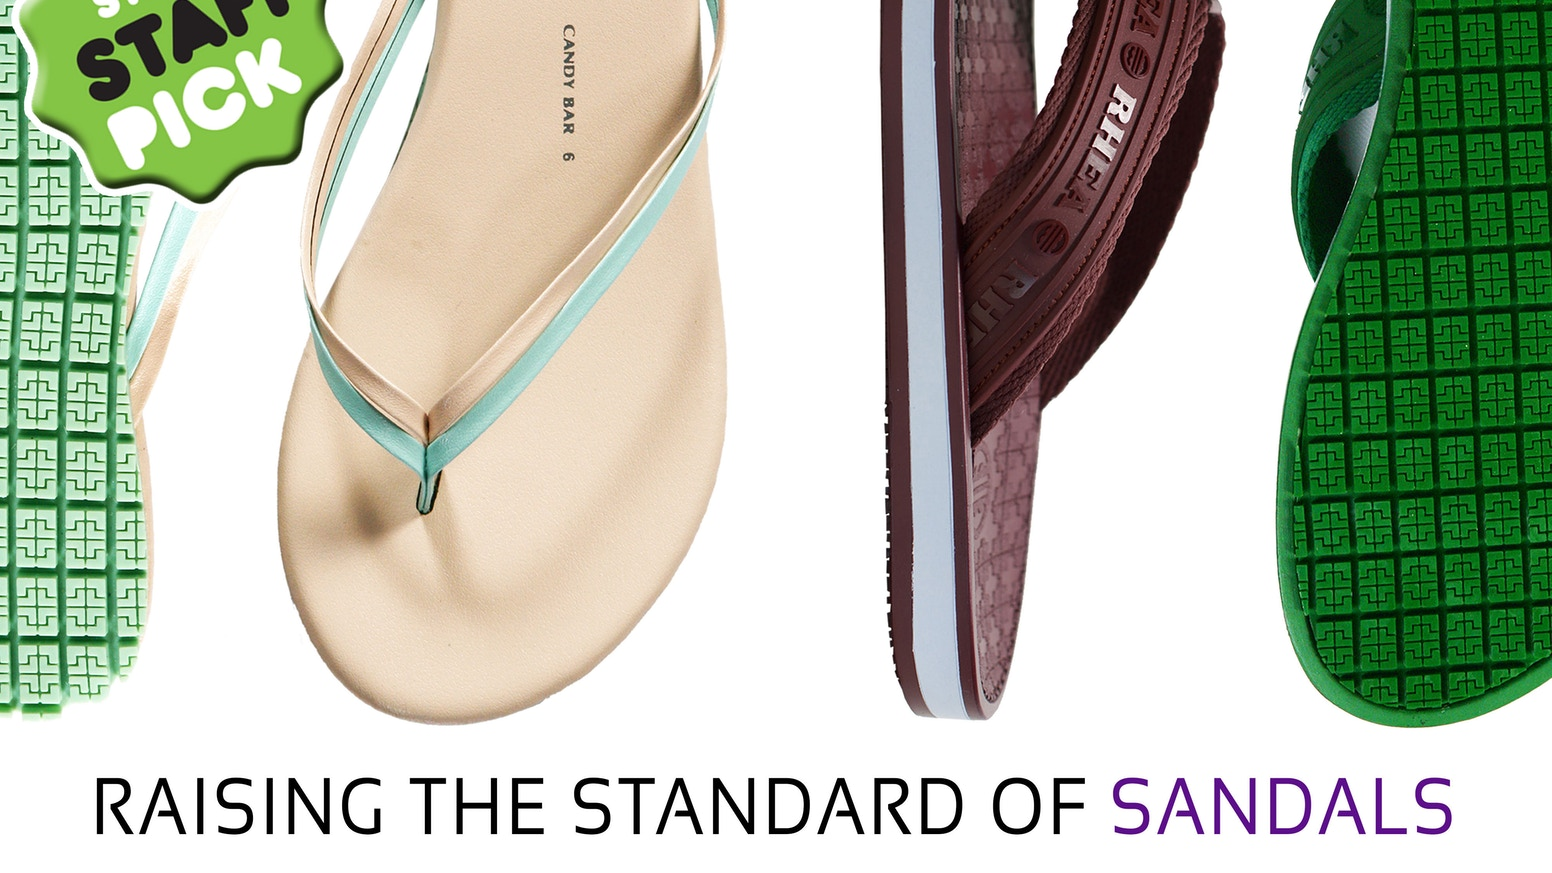 Technology meets sandals. Rhea Footwear is launching its line of sandals, integrating unsurpassed technology with innovative design.